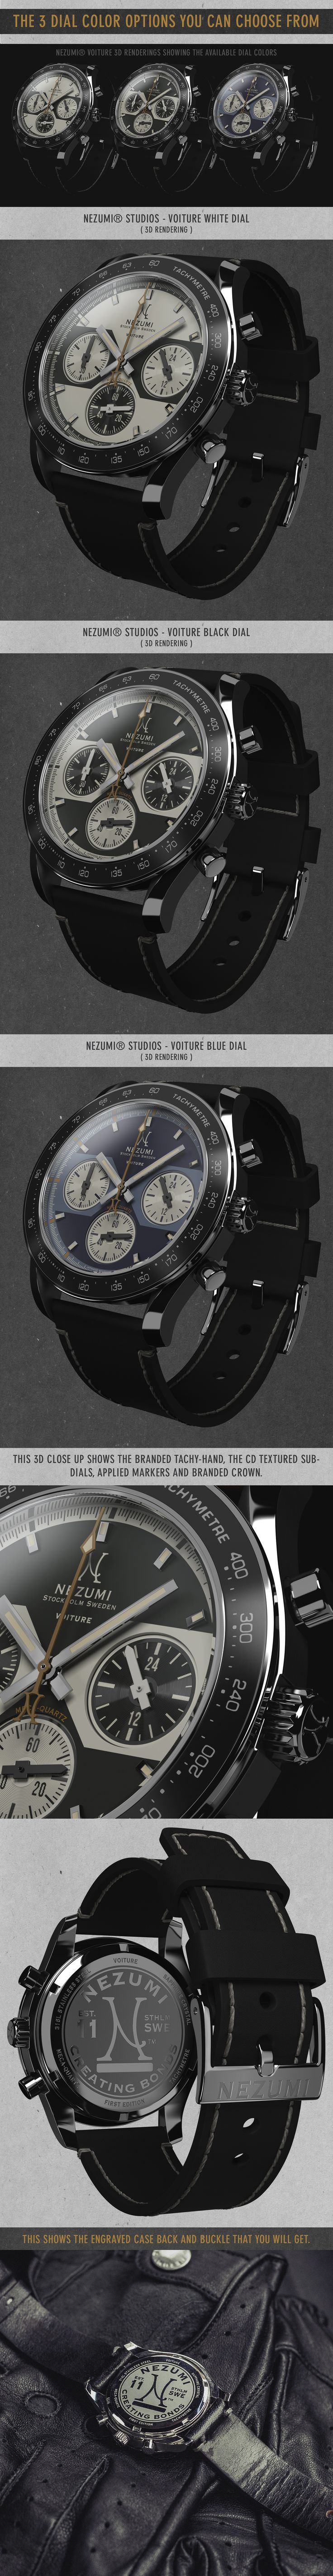 ferrari nart trader hublot car racing big watches new auto for a motor news bang from